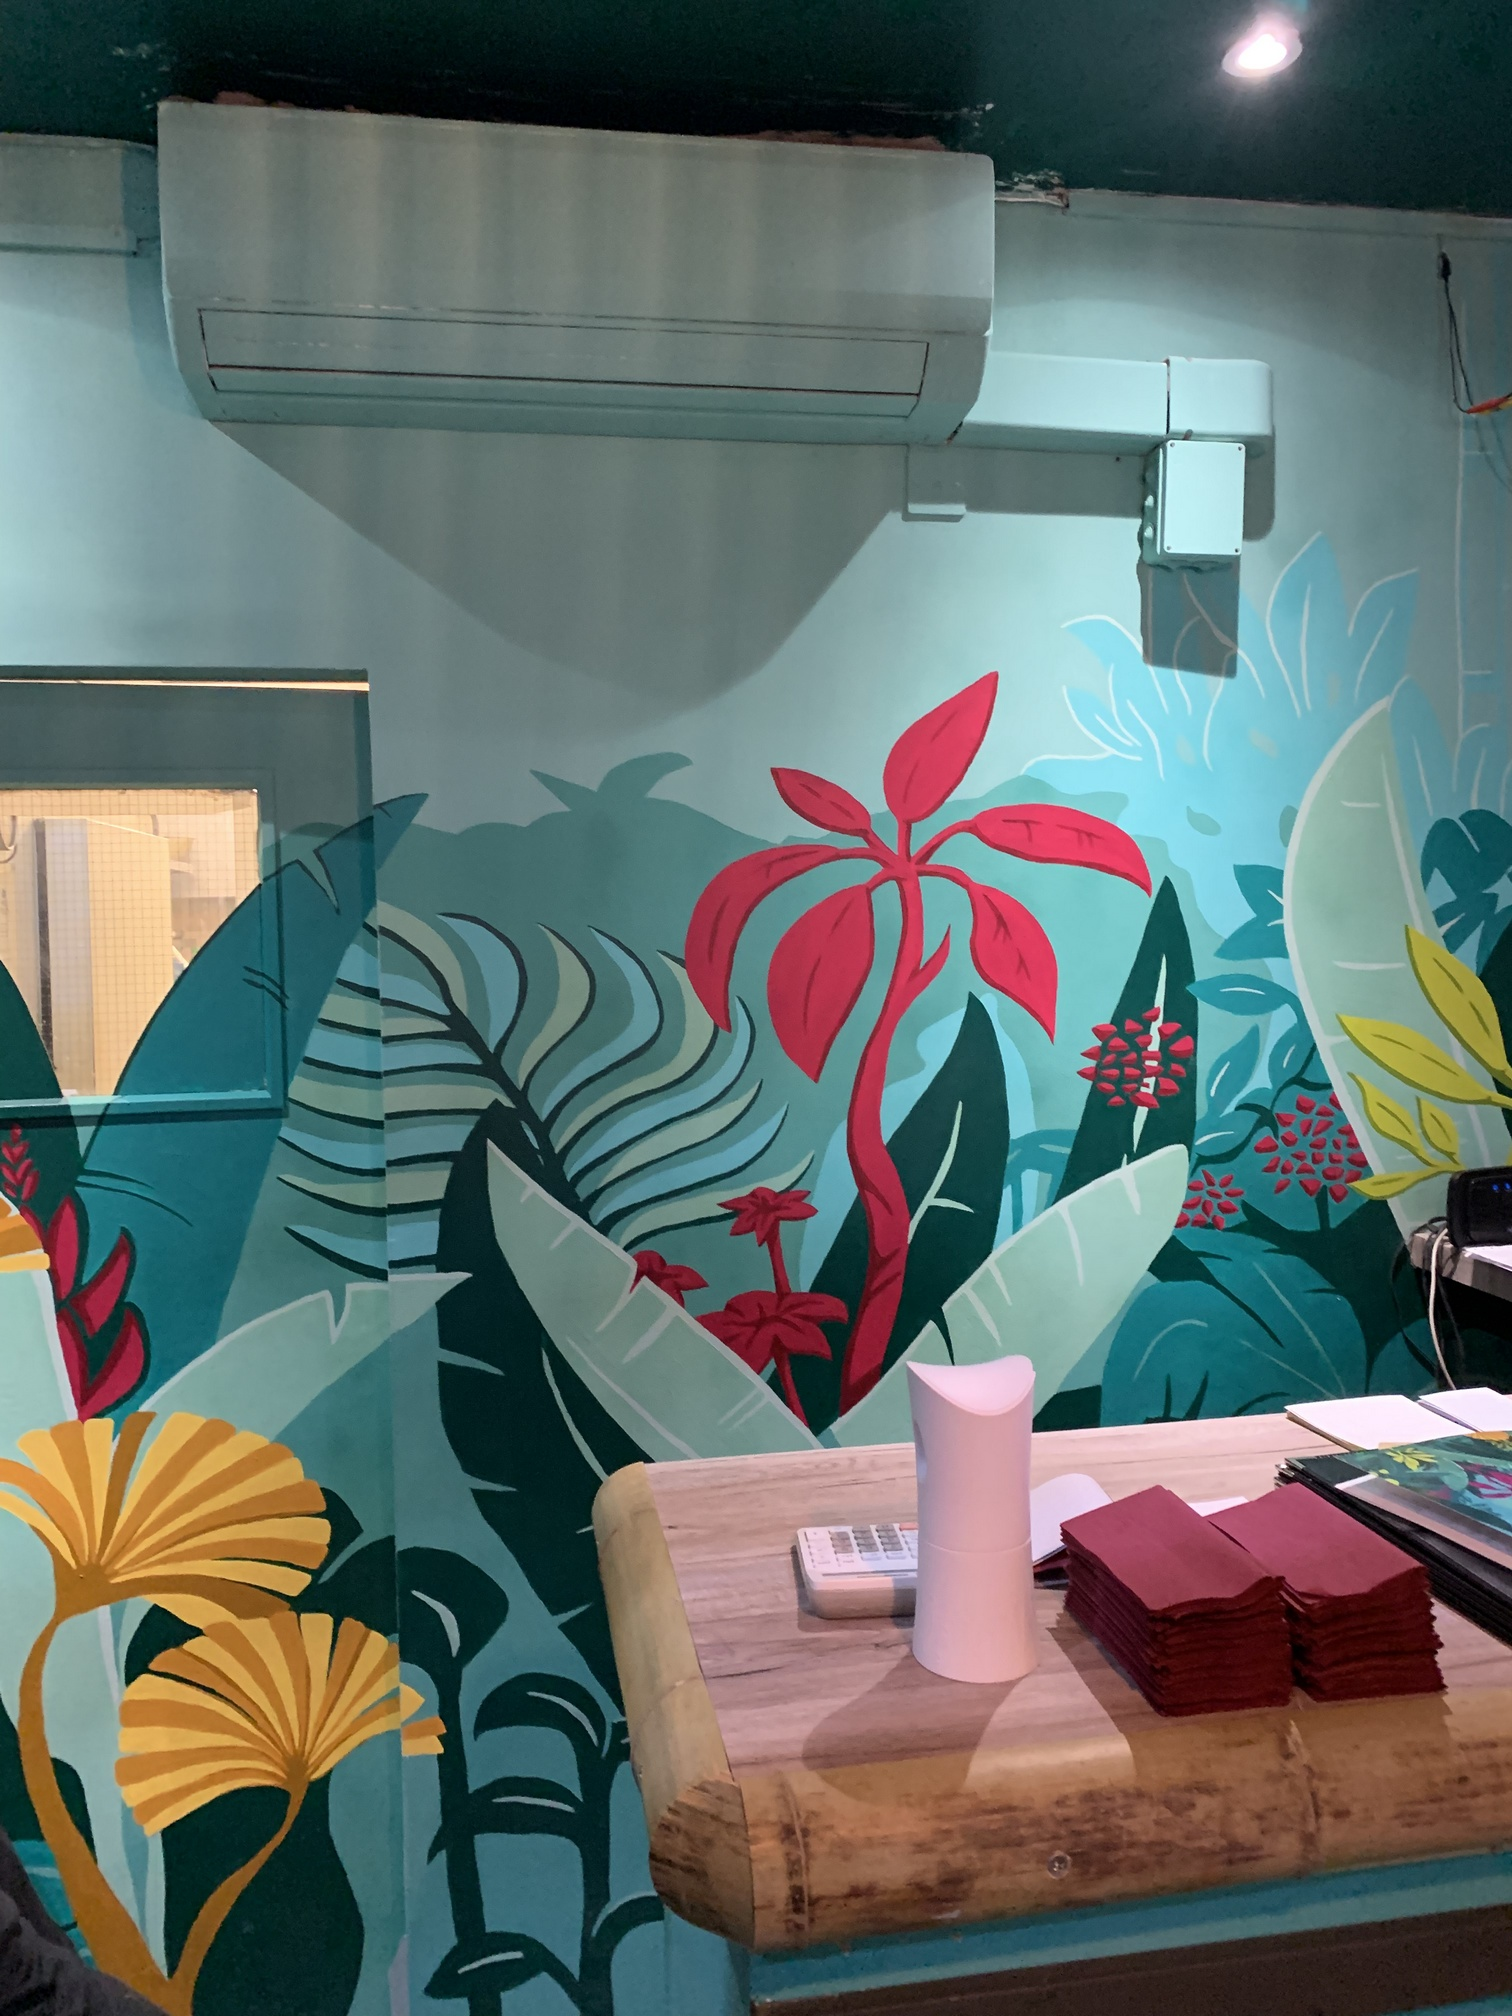 Gallery Image for Ragam an Indian Restaurant & Takeaway in London